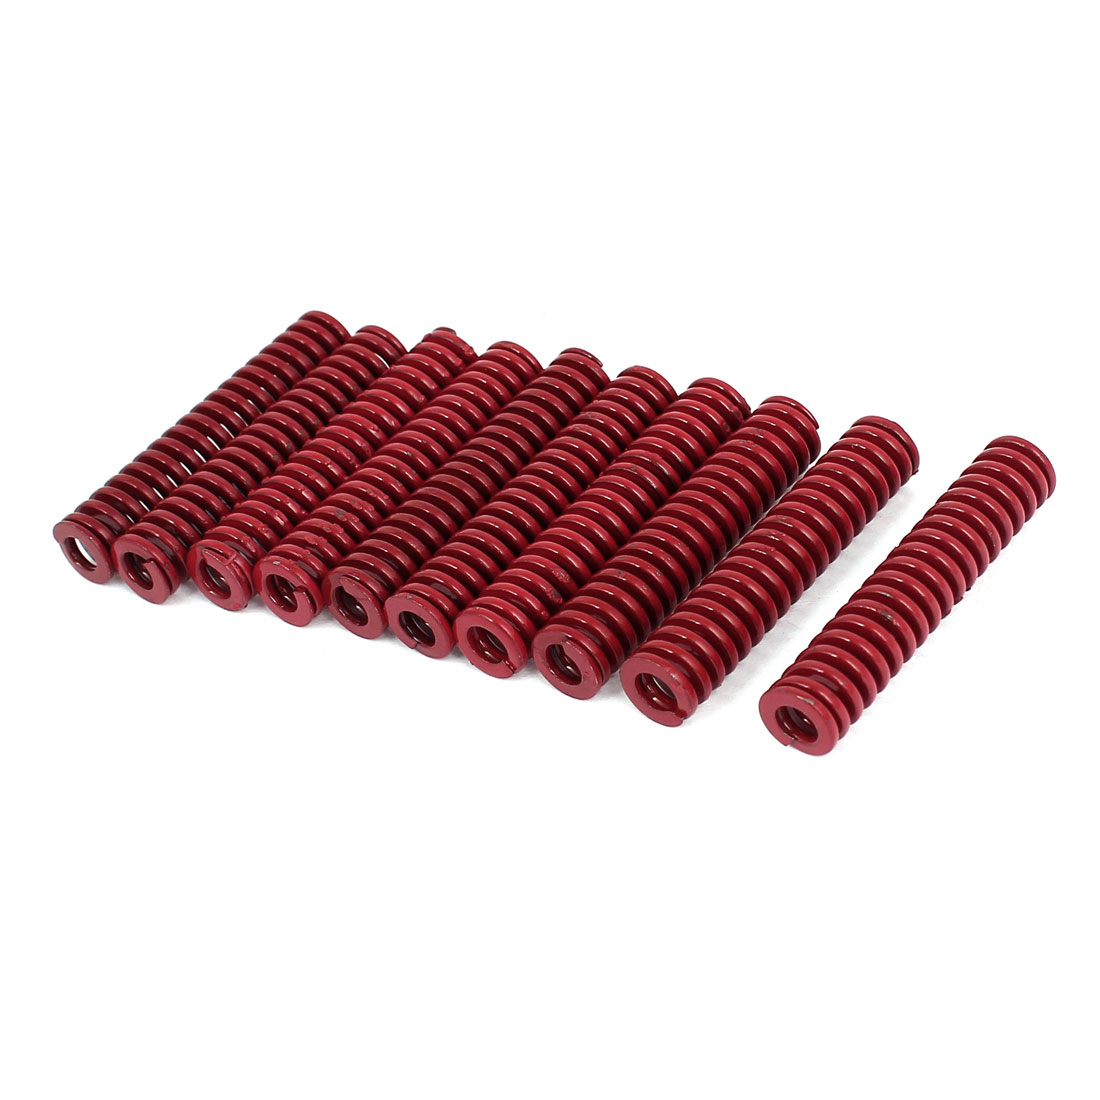 10mm OD 50mm Long Medium Load Stamping Compression Mold Die Spring Red 10pcs